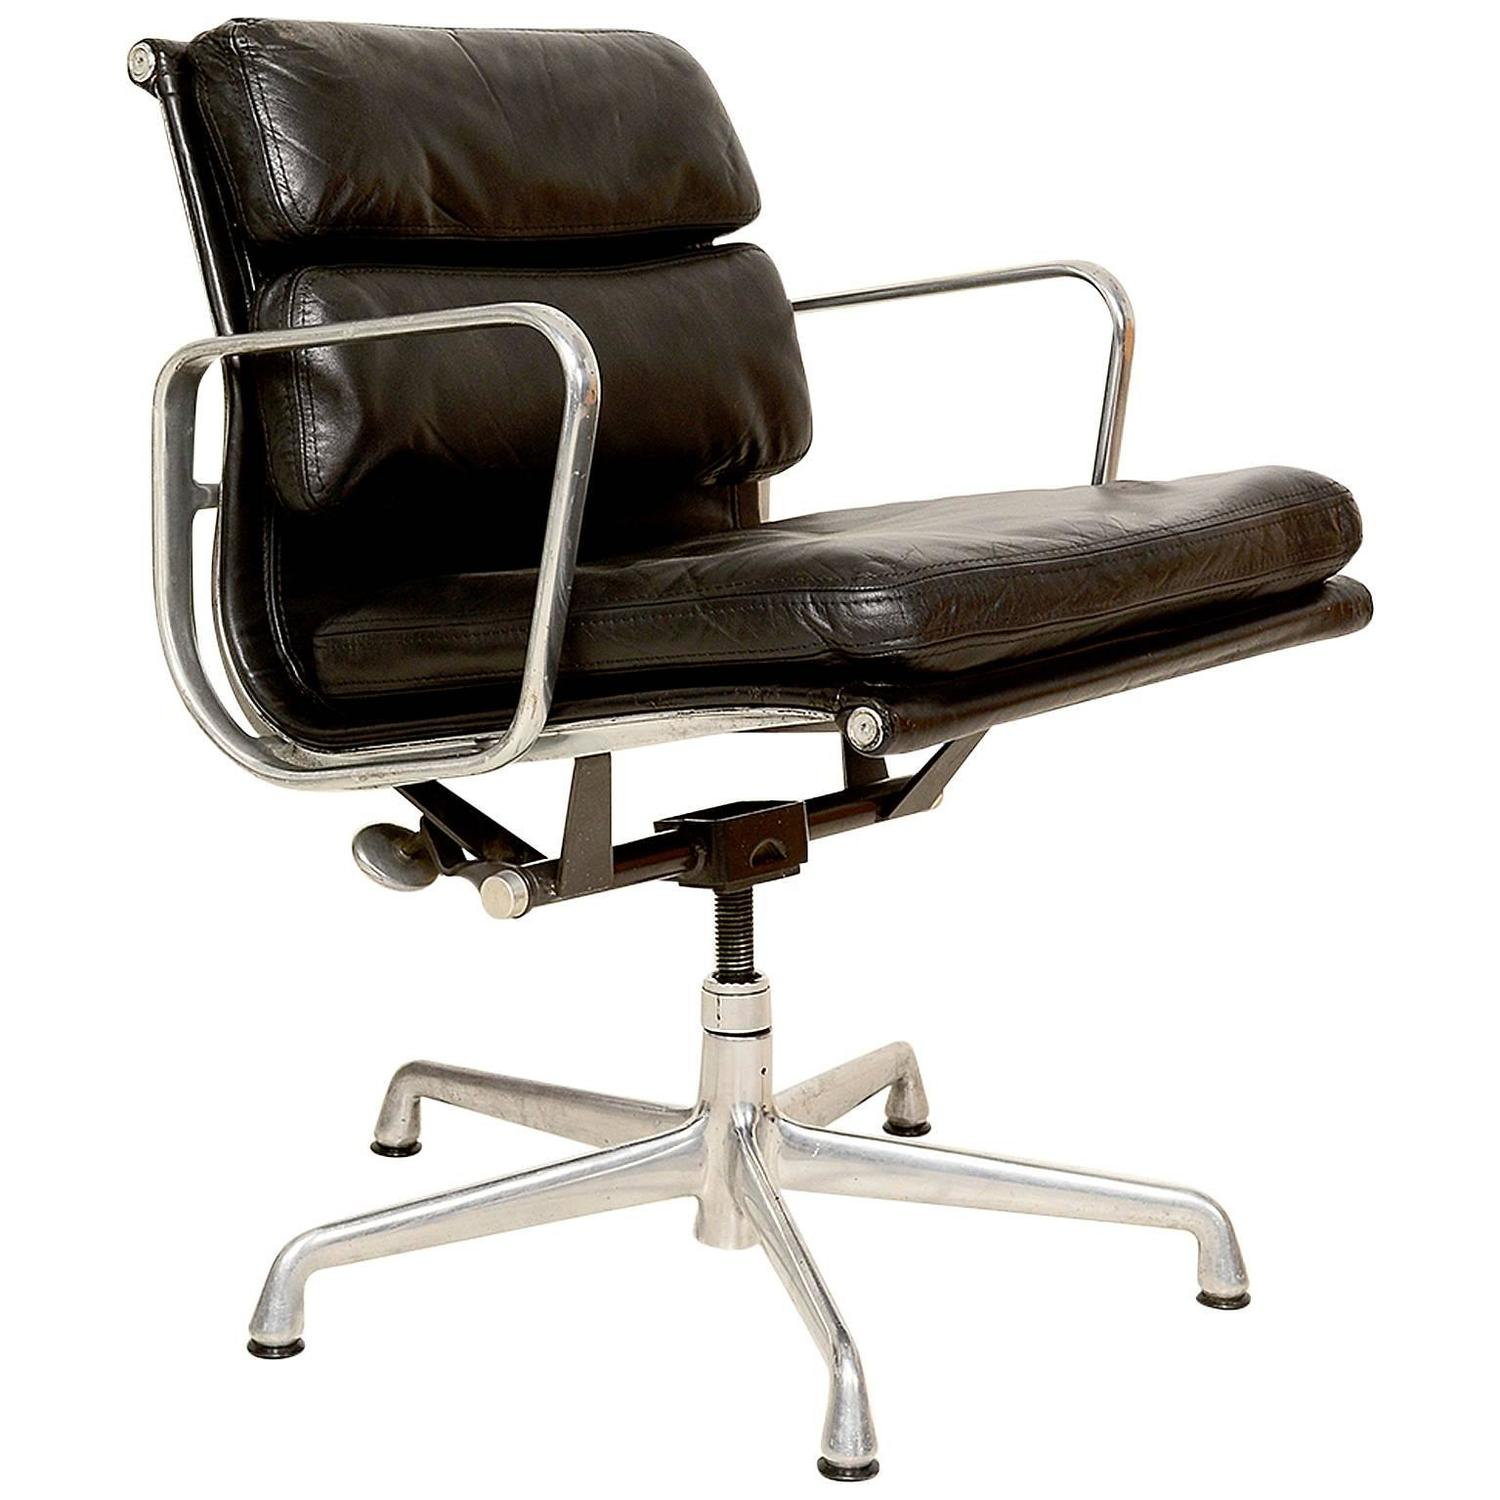 Etonnant Mid Century Modern Herman Miller Eames Soft Pad Aluminum Group Chair At  1stdibs